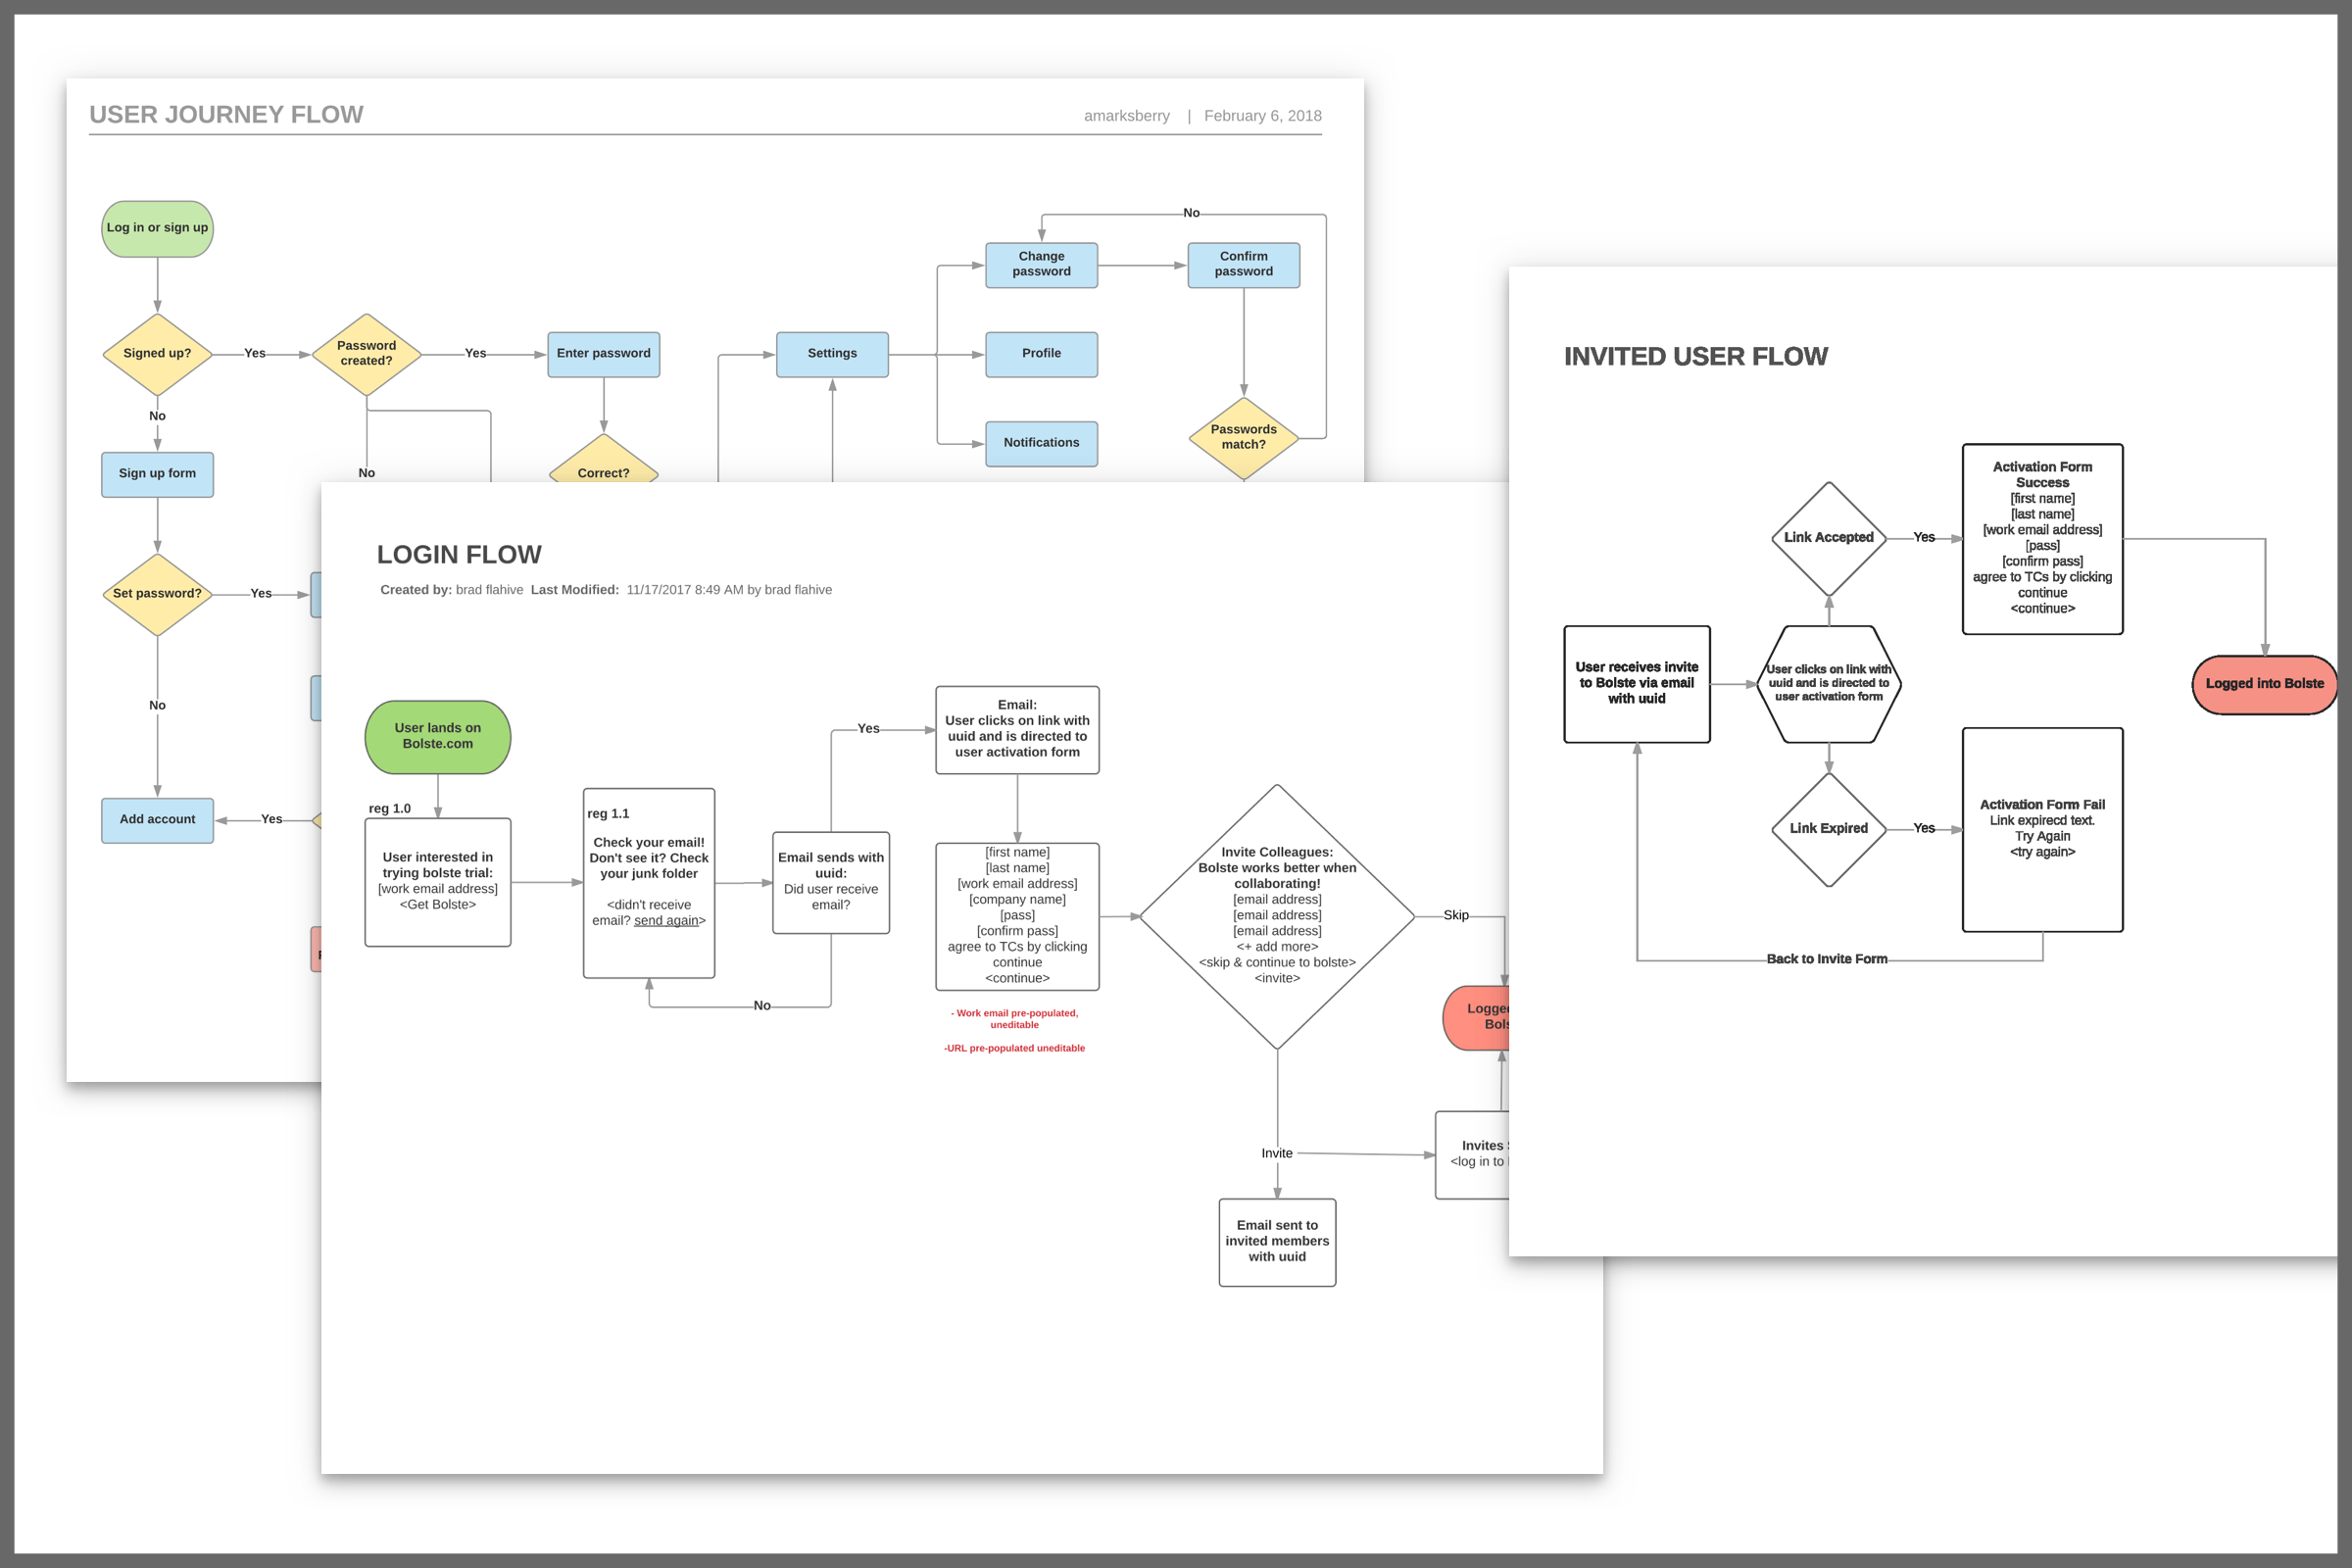 Ajm Bolste Sign Up Process Flow Diagram User Experience Simplified Customer Journey And Diagrams